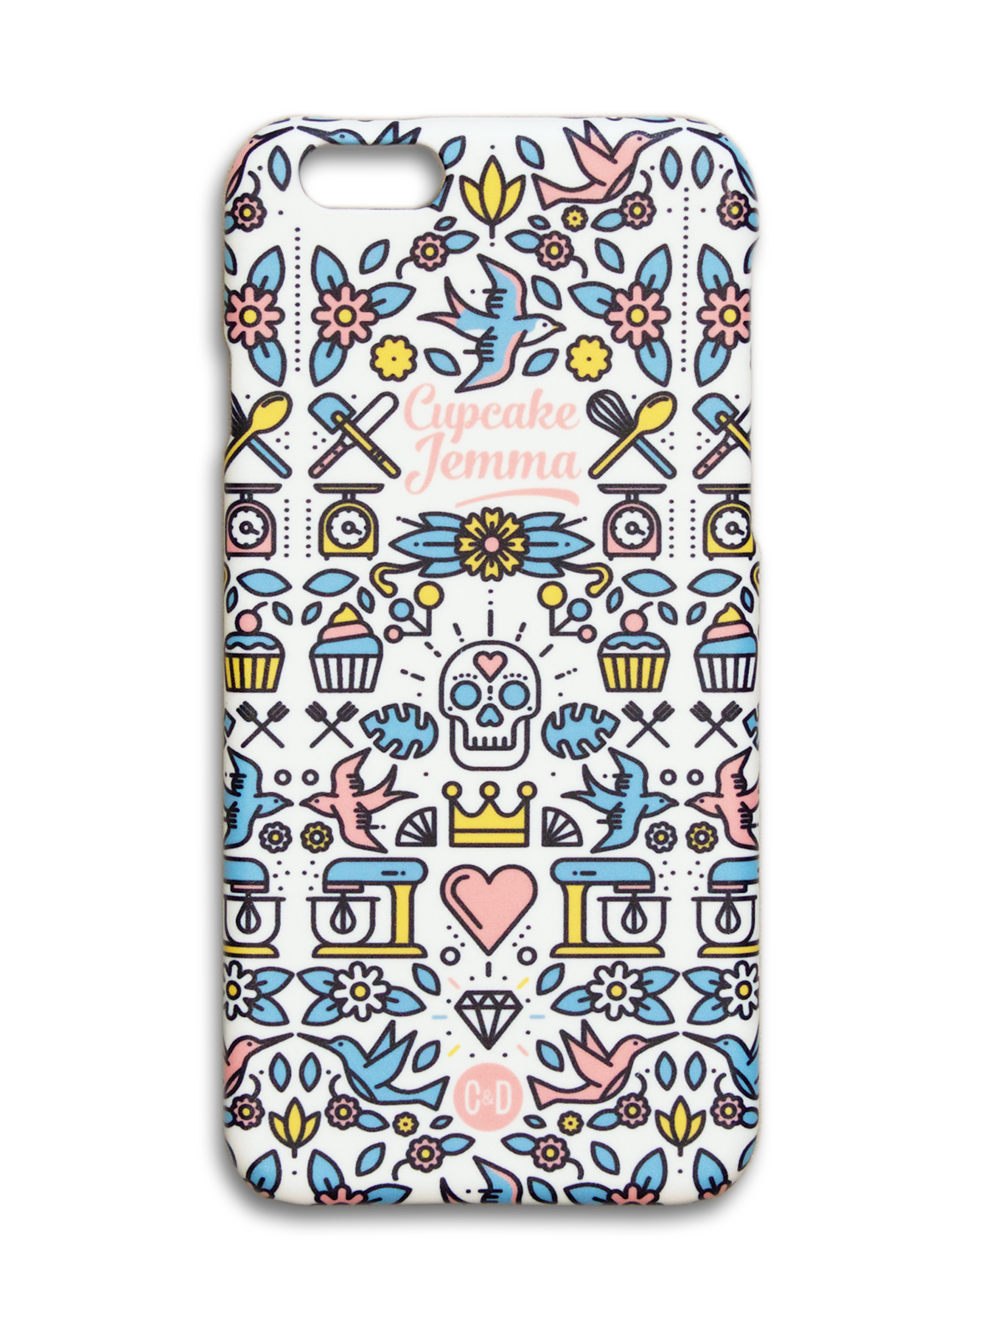 iPhone-cover.png